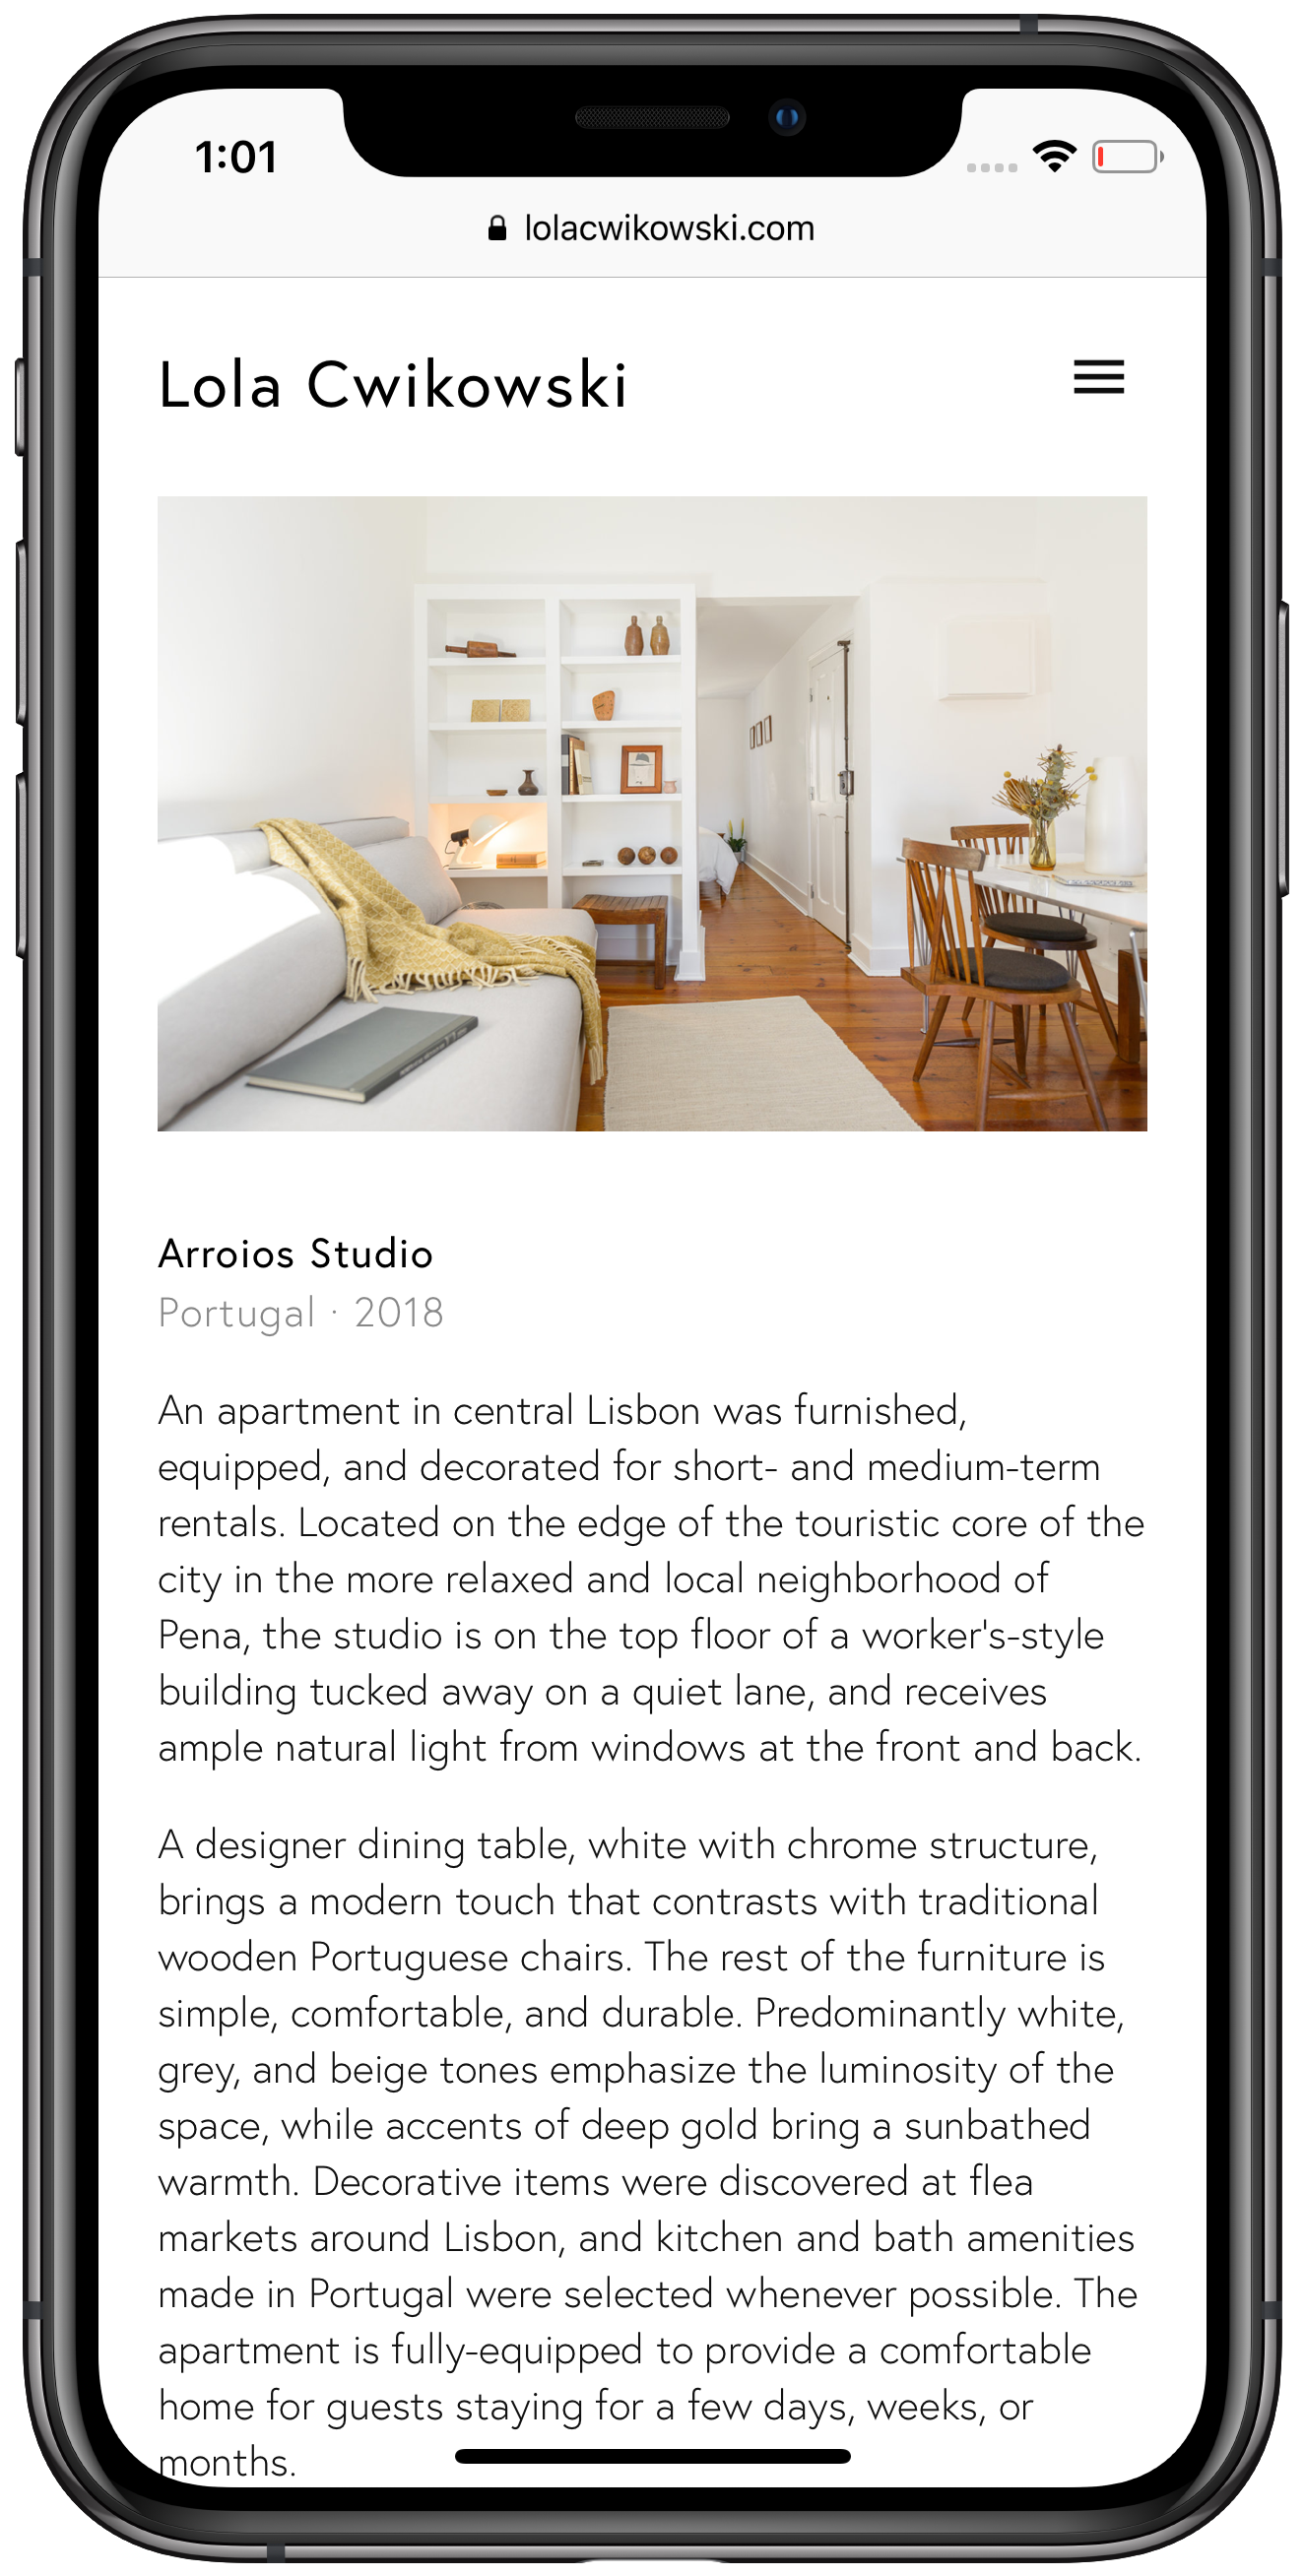 Screen capture of Lola Cwikowski Interior Design Studio website, Arroios studio project